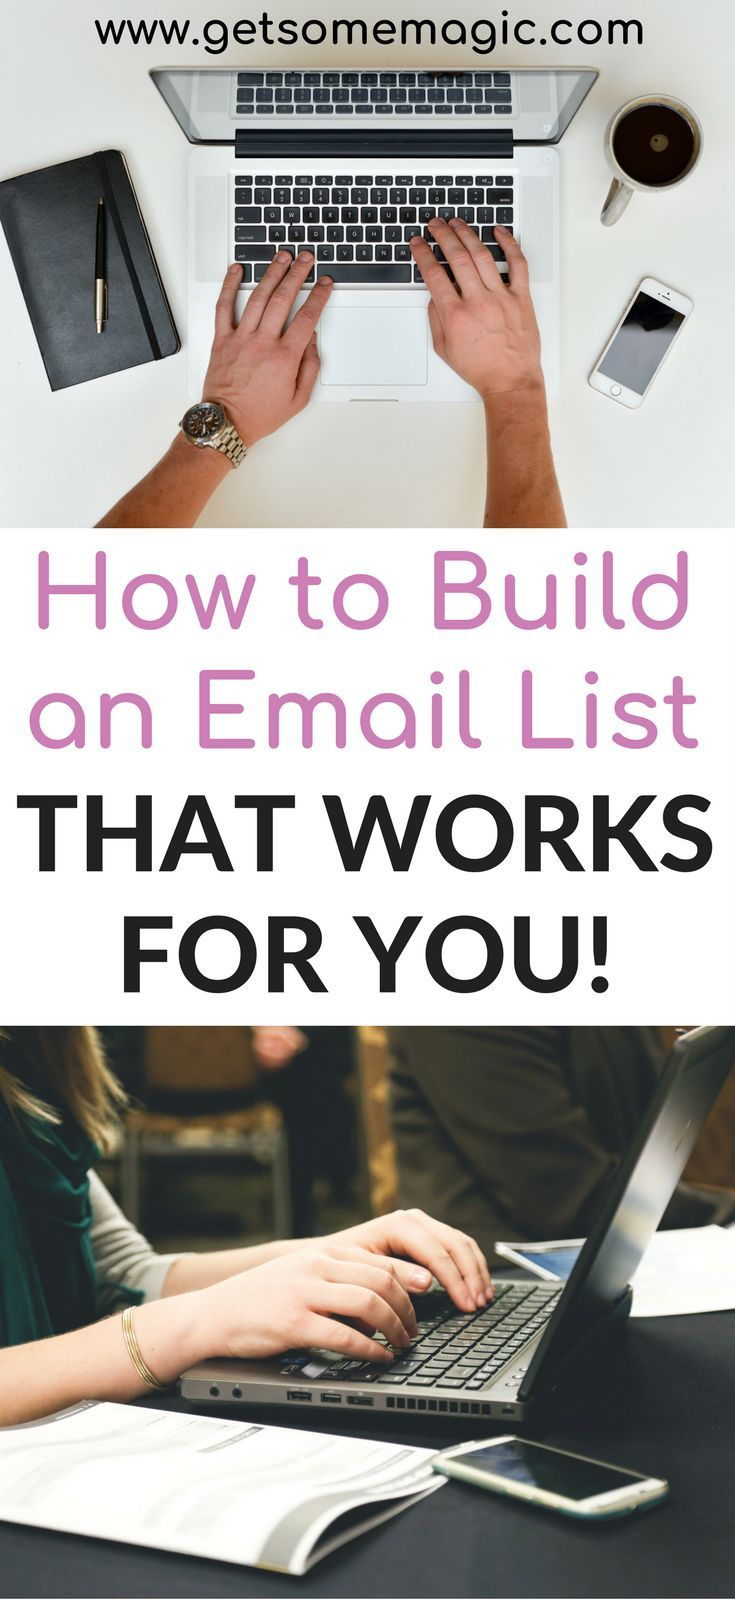 What good is an email list, if your subscribers don't convert to customers? We will give you some great tips to help you build an email list that WORKS for you and helps you produce leads for your business. We will also give you a free checklist so you can fix your approach to email lists today. Don't forget to save this so you can find it later! #emailmarketing #emaillist #emaillistbuilding #marketingtips